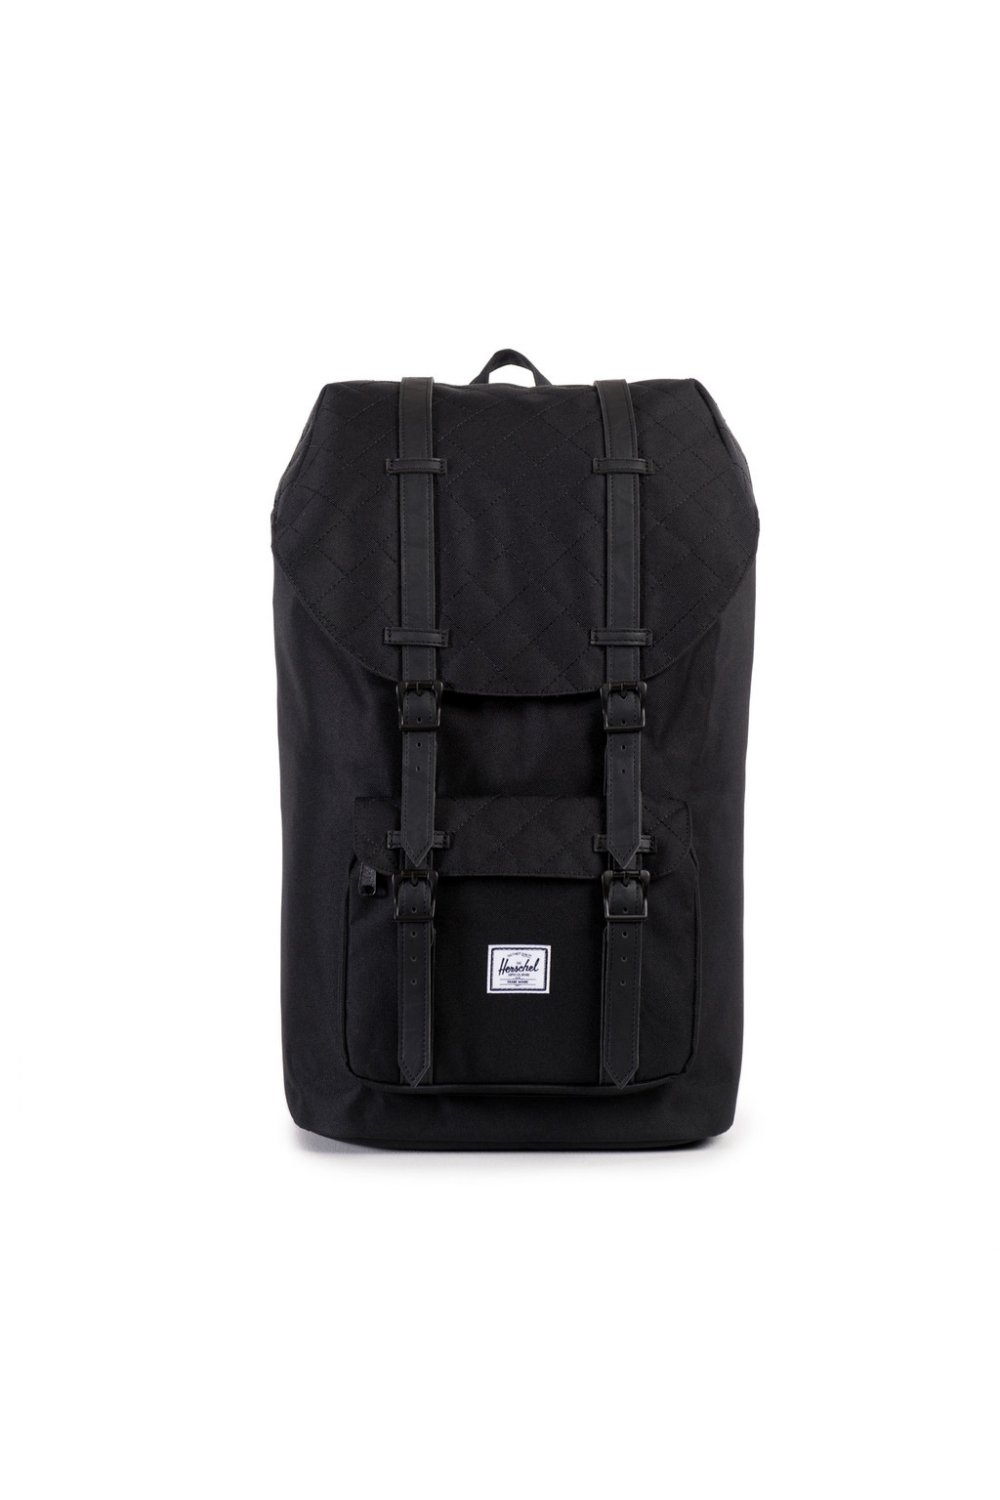 f885a5e1a23 Herschel Supply Co Little America Backpack (Black Quilted)